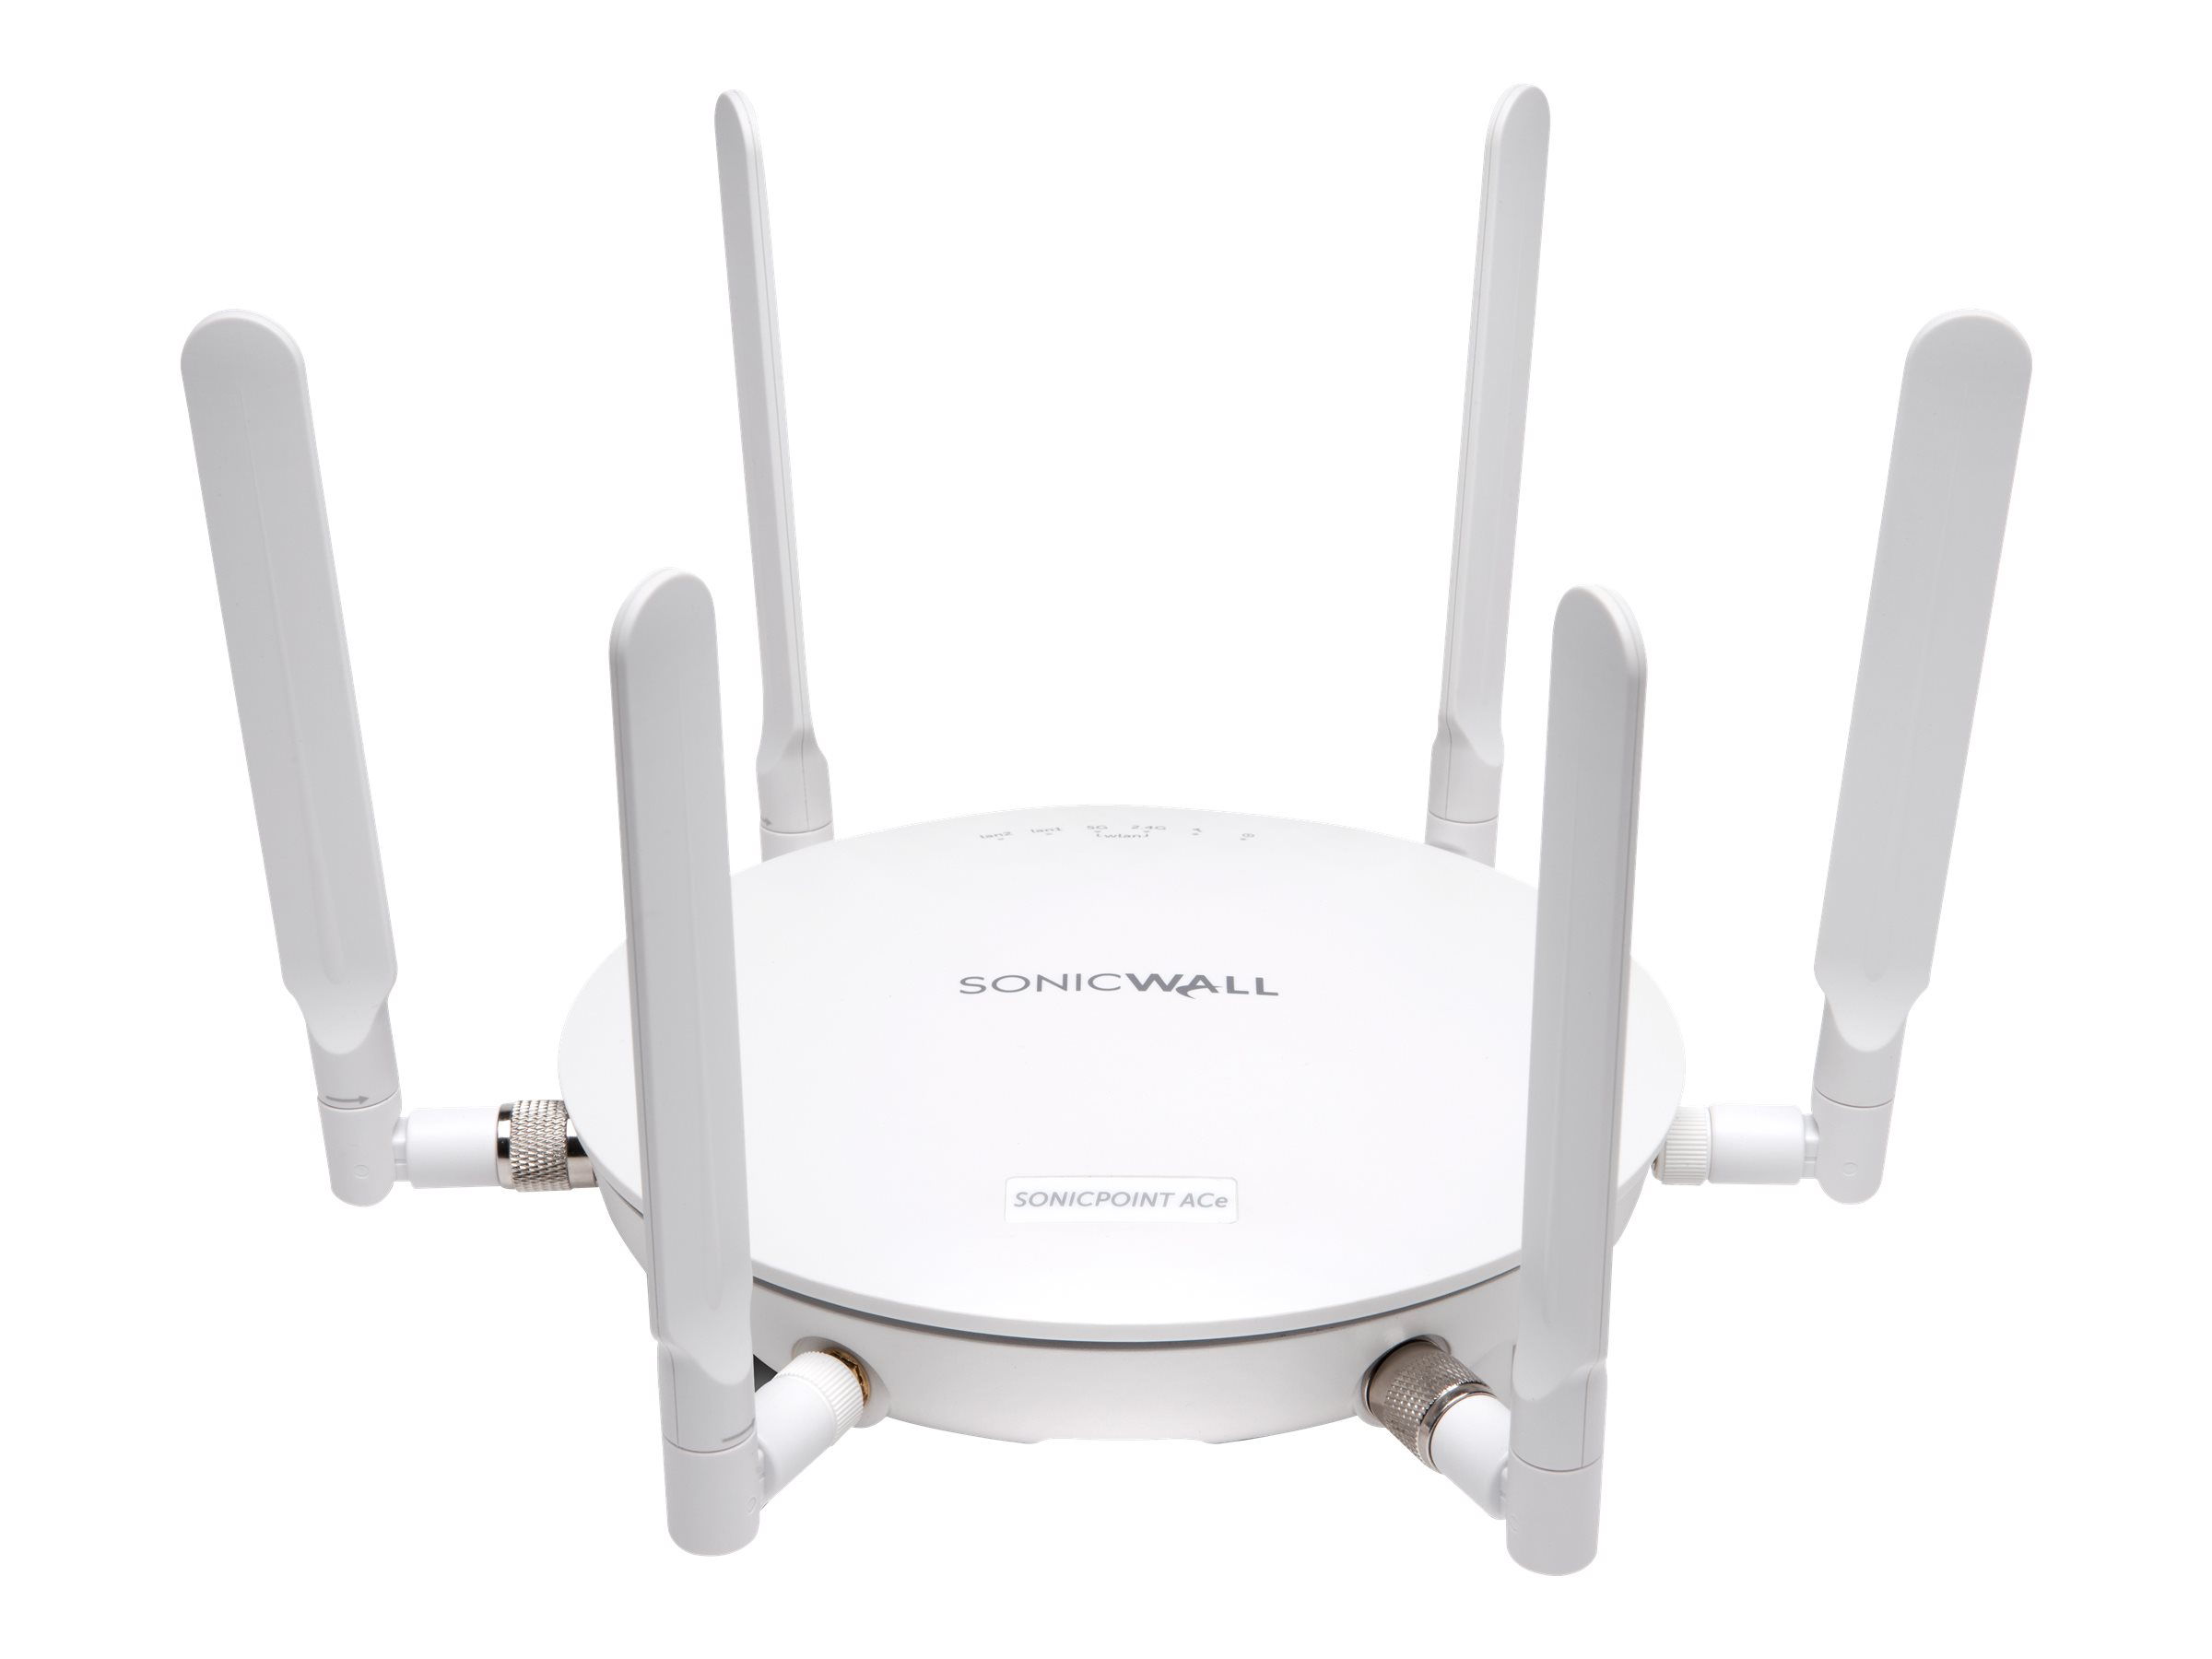 SonicWall SonicPoint ACe - Drahtlose Basisstation - mit 1 Jahr dynamischer Support 24 x 7 - Wi-Fi - Dualband - mit SonicWALL 802.3at Gigabit PoE Injector